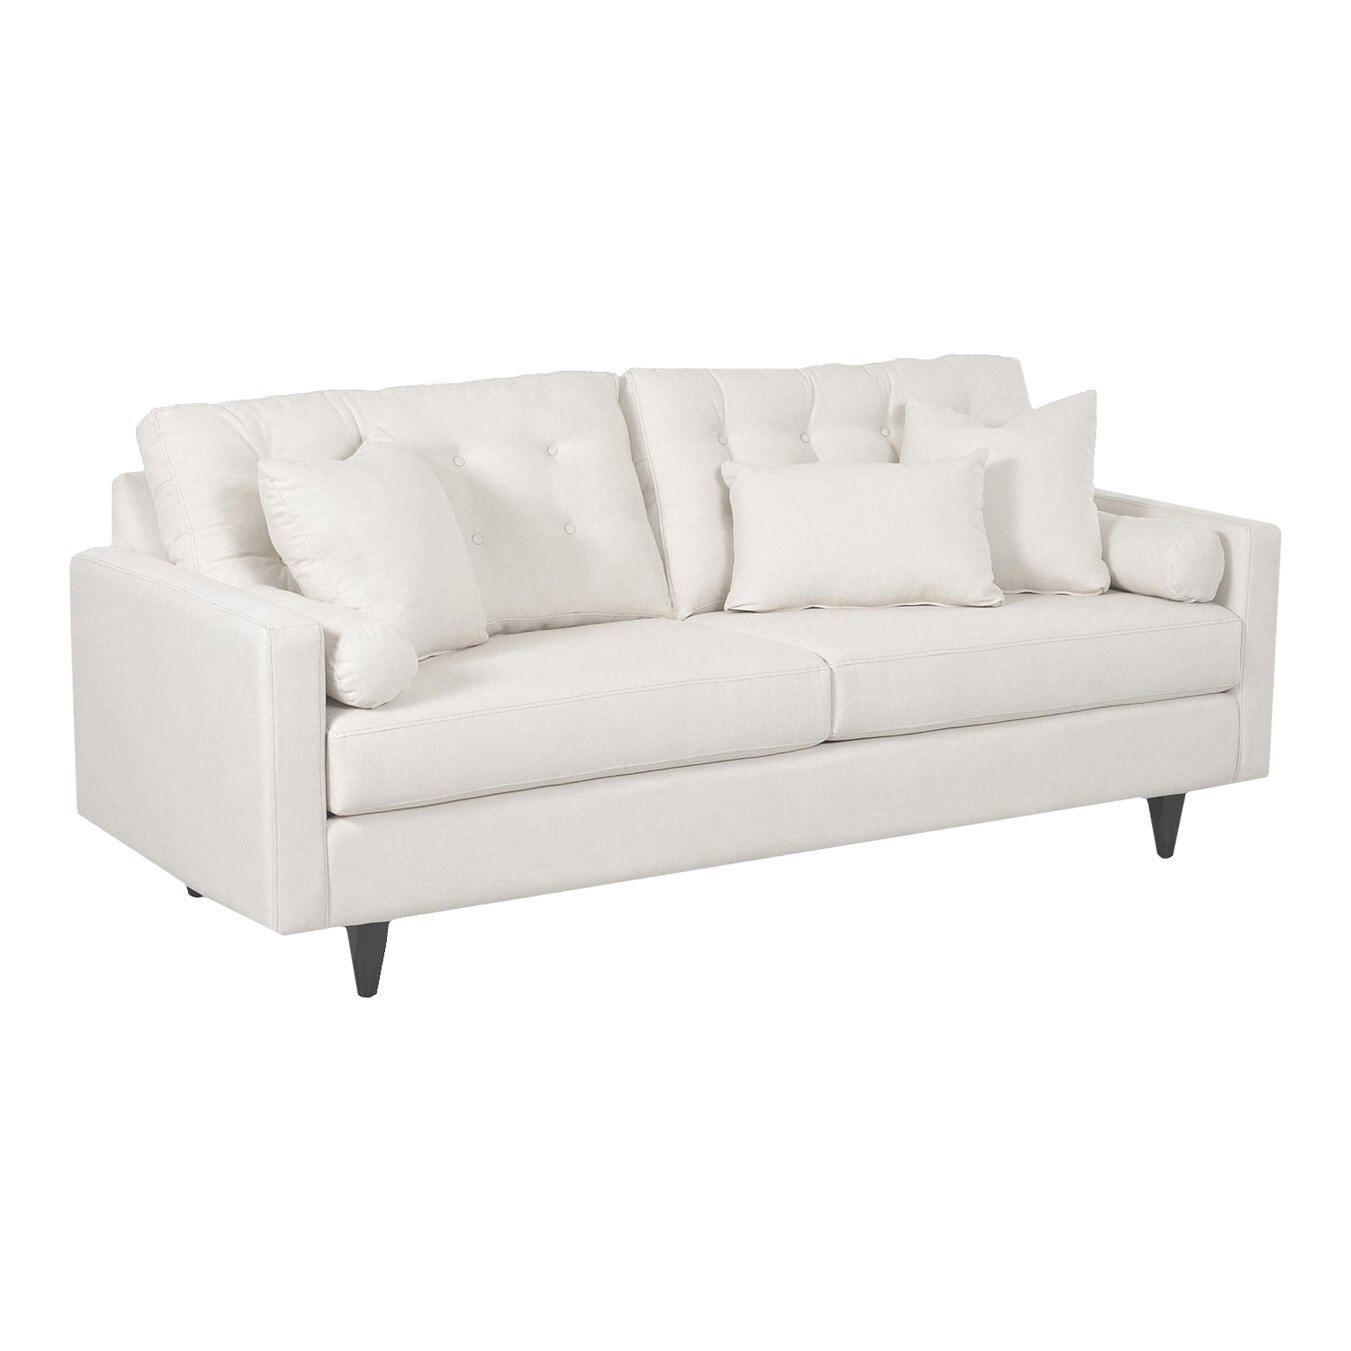 Wayfair Custom Upholstery Harper Sofa & Reviews | Wayfair